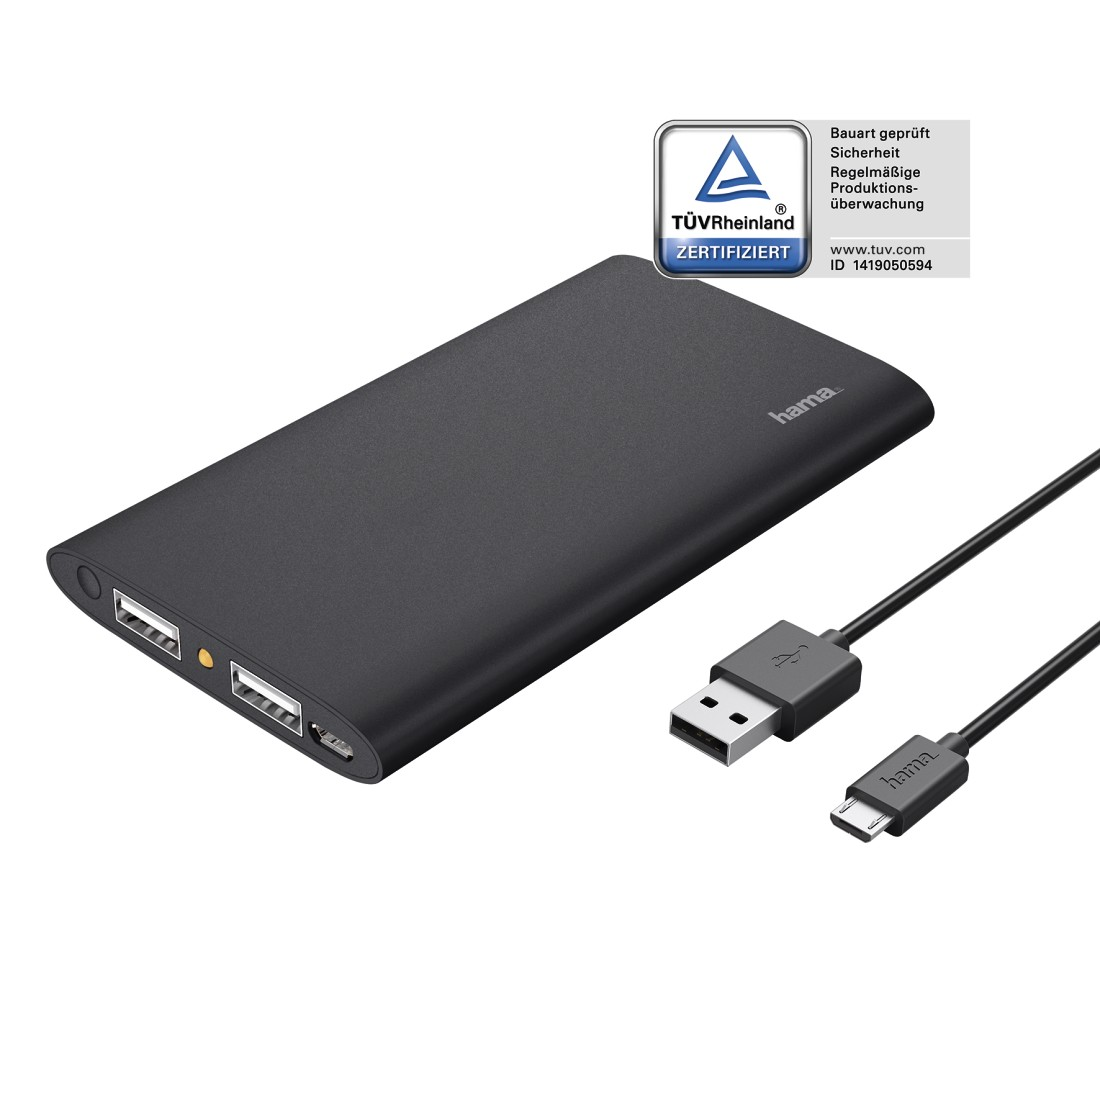 uax2 Printable Image Logo 2 - Hama, Premium Alu Power Pack, 5000 mAh, anthracite